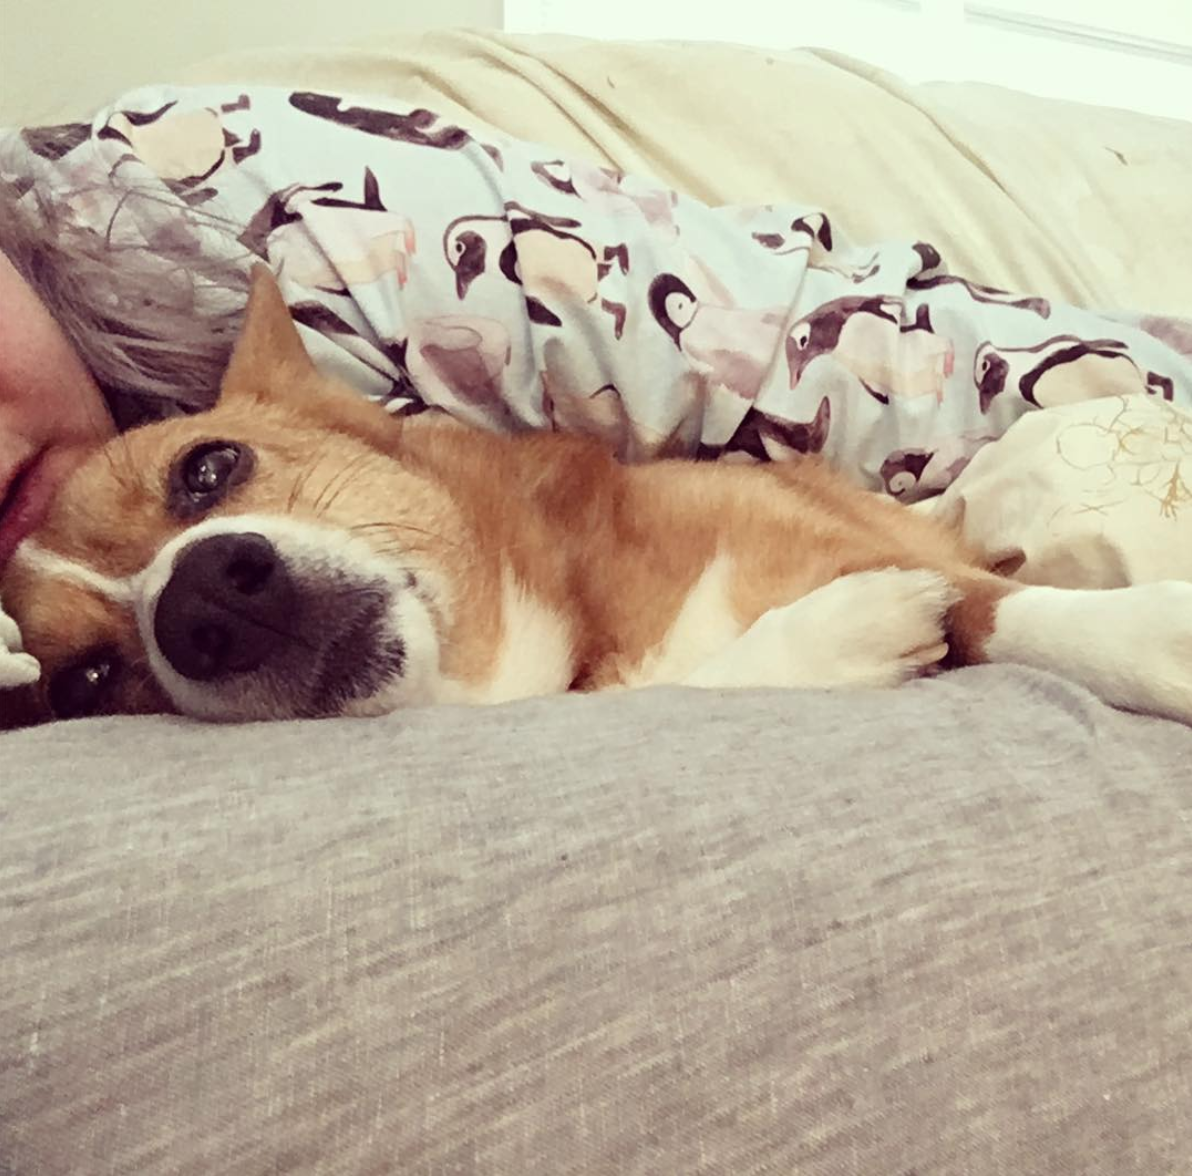 This corgi isn't sure how he feels about the extra affection. (Image via @nihilist_corgi)